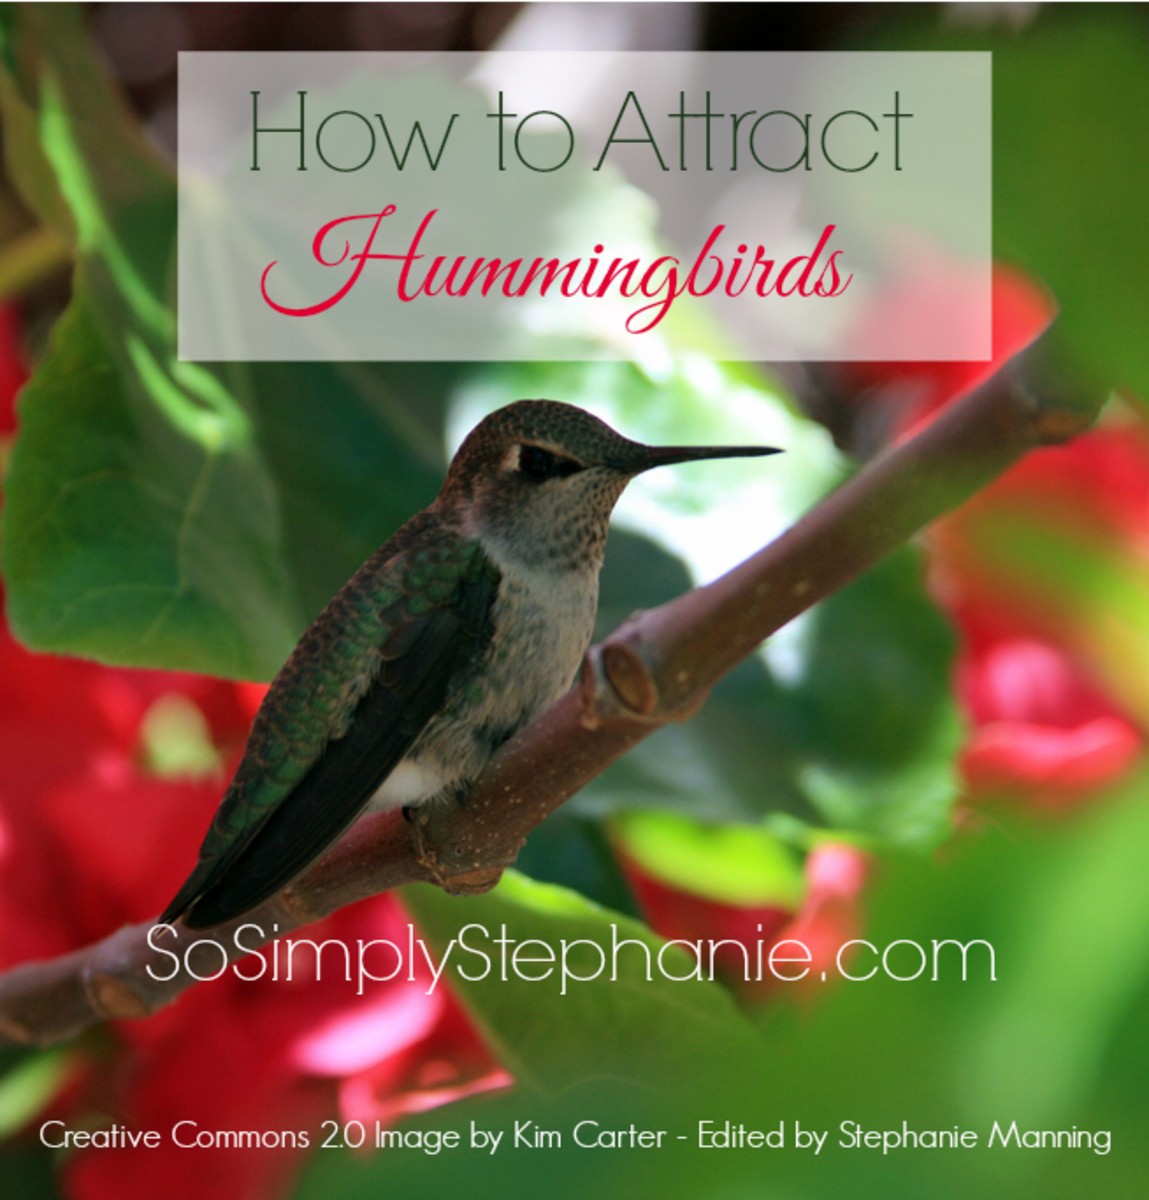 Learn more about how to attract hummingbirds including how to create the perfect environment, water supply and more.